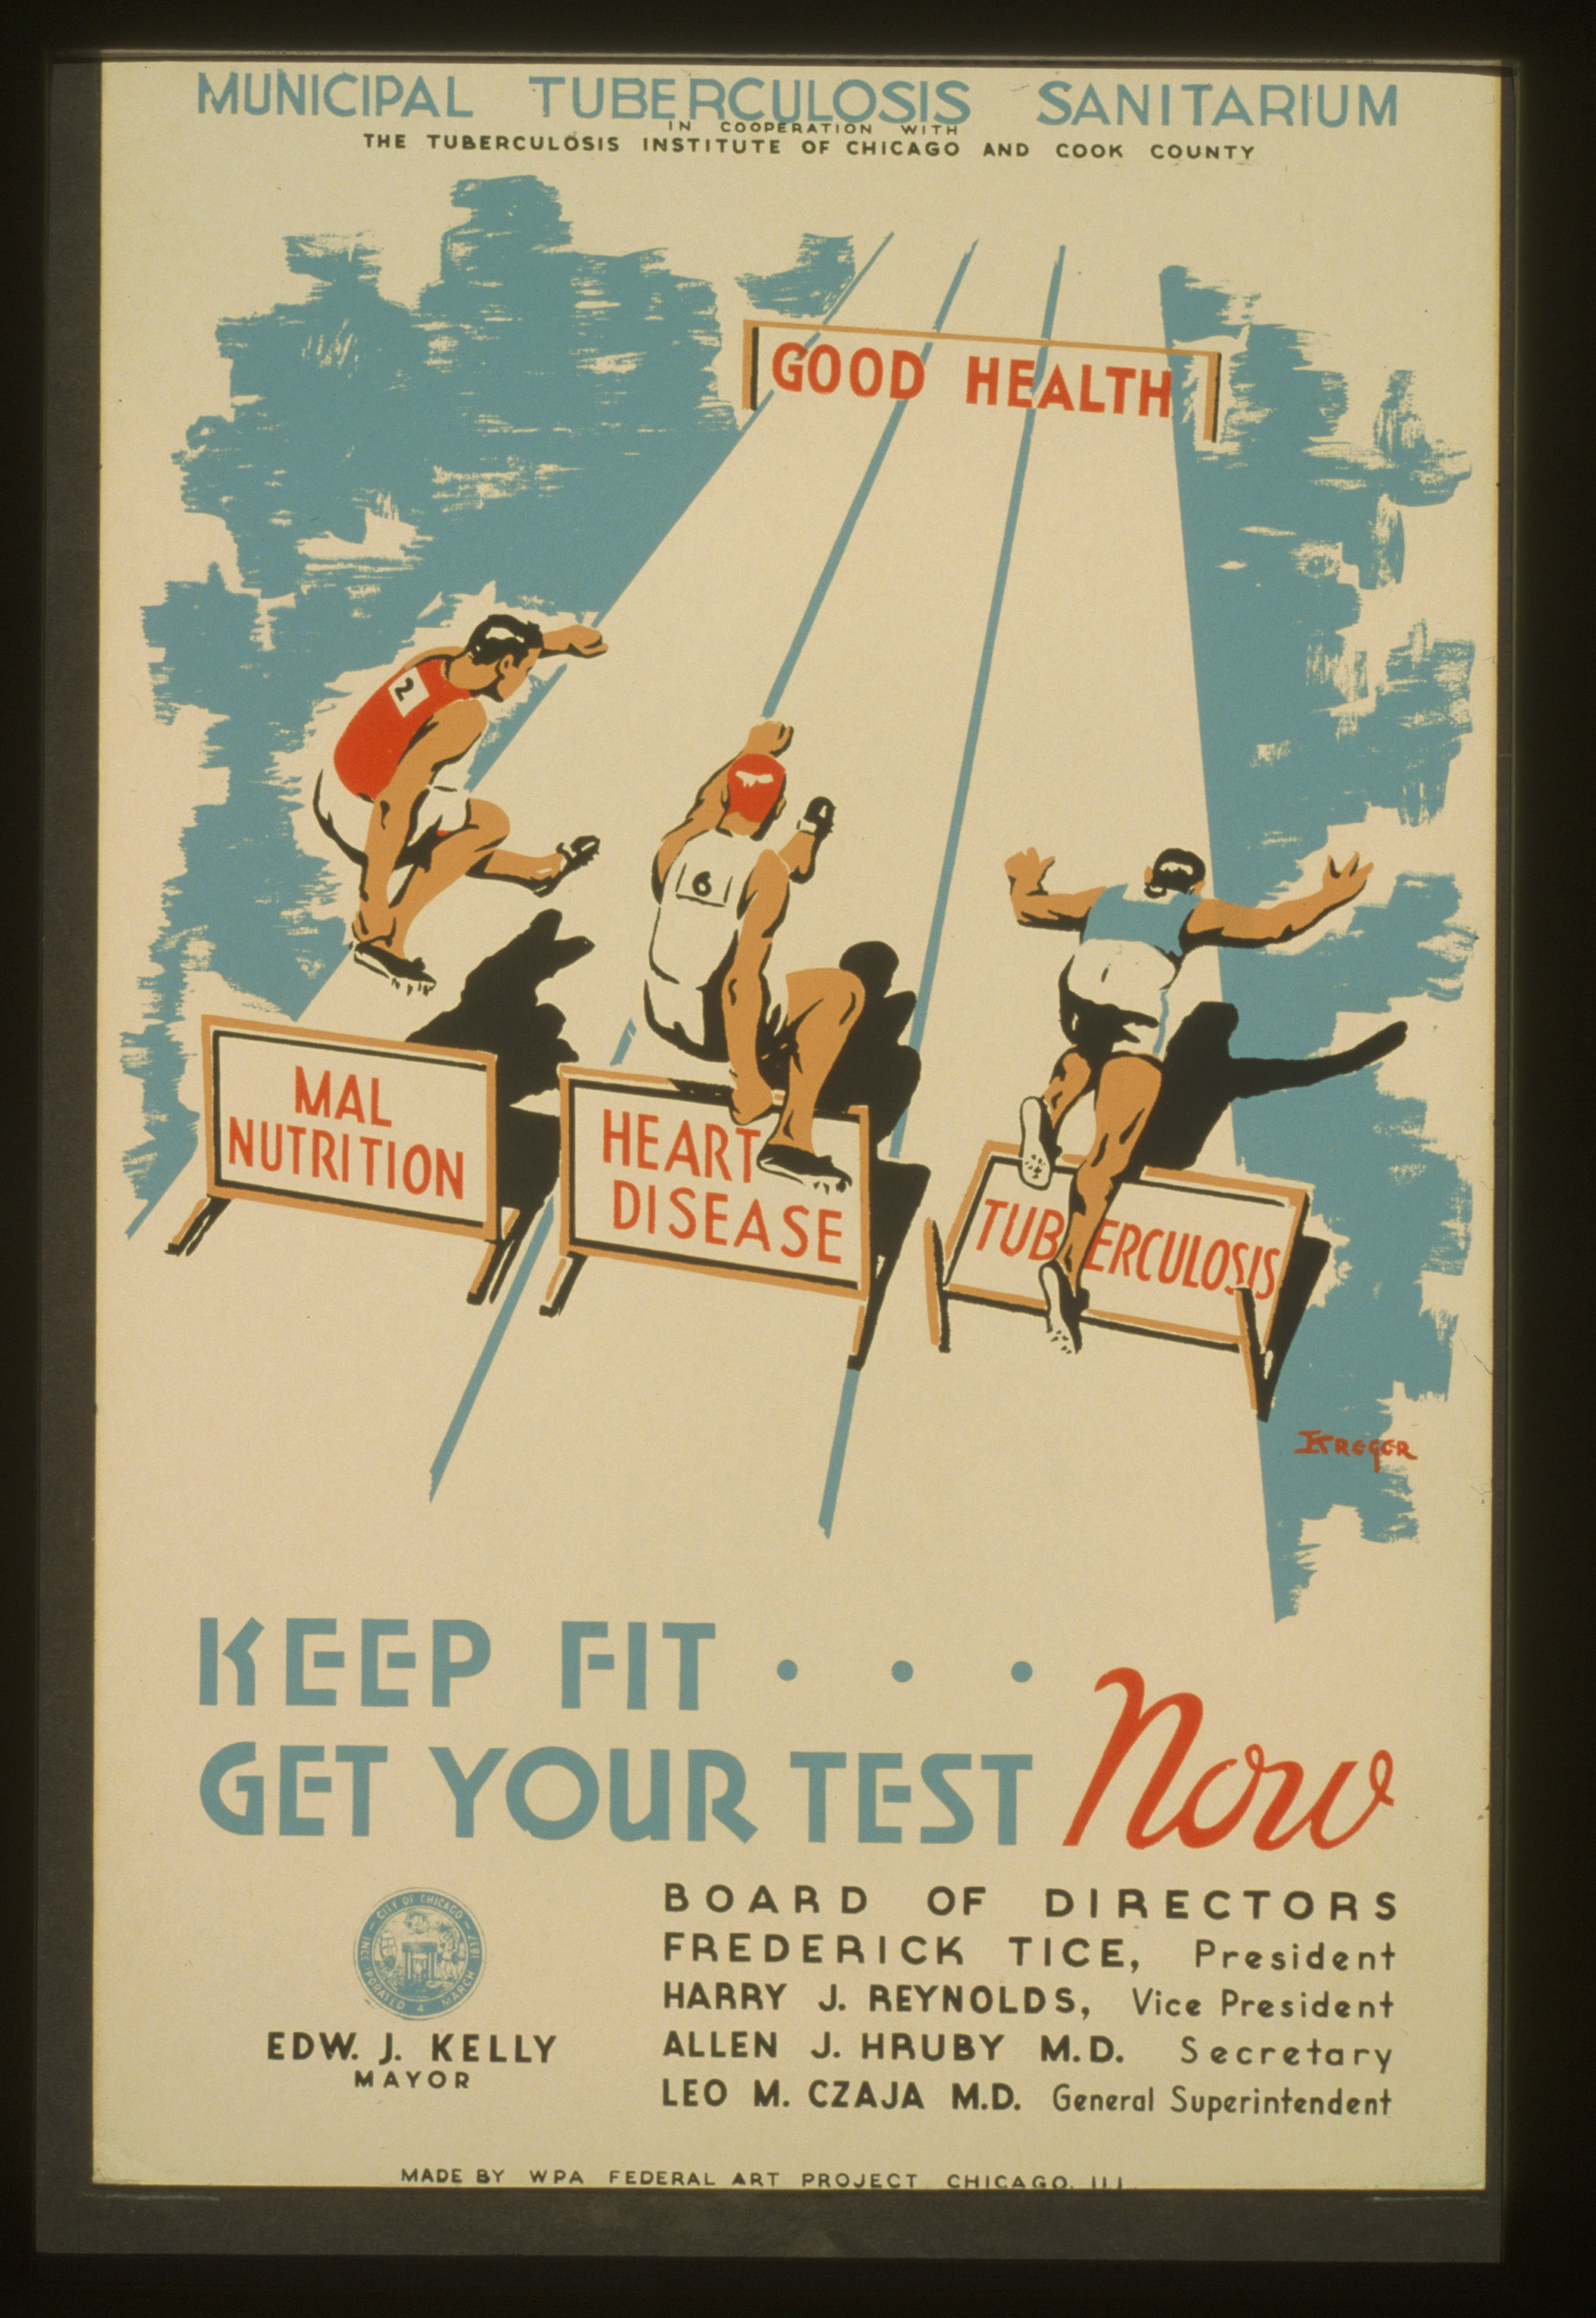 City of Chicago Municipal Tuberculosis Sanitarium poster promoting testing for tuberculosis and showing two athletes hurdling barriers  malnutrition  and  heart disease  and a third athlete stumbling over the barrier  tuberculosis  on their way to the finish line  good health.  Created between 1936 and 1939.